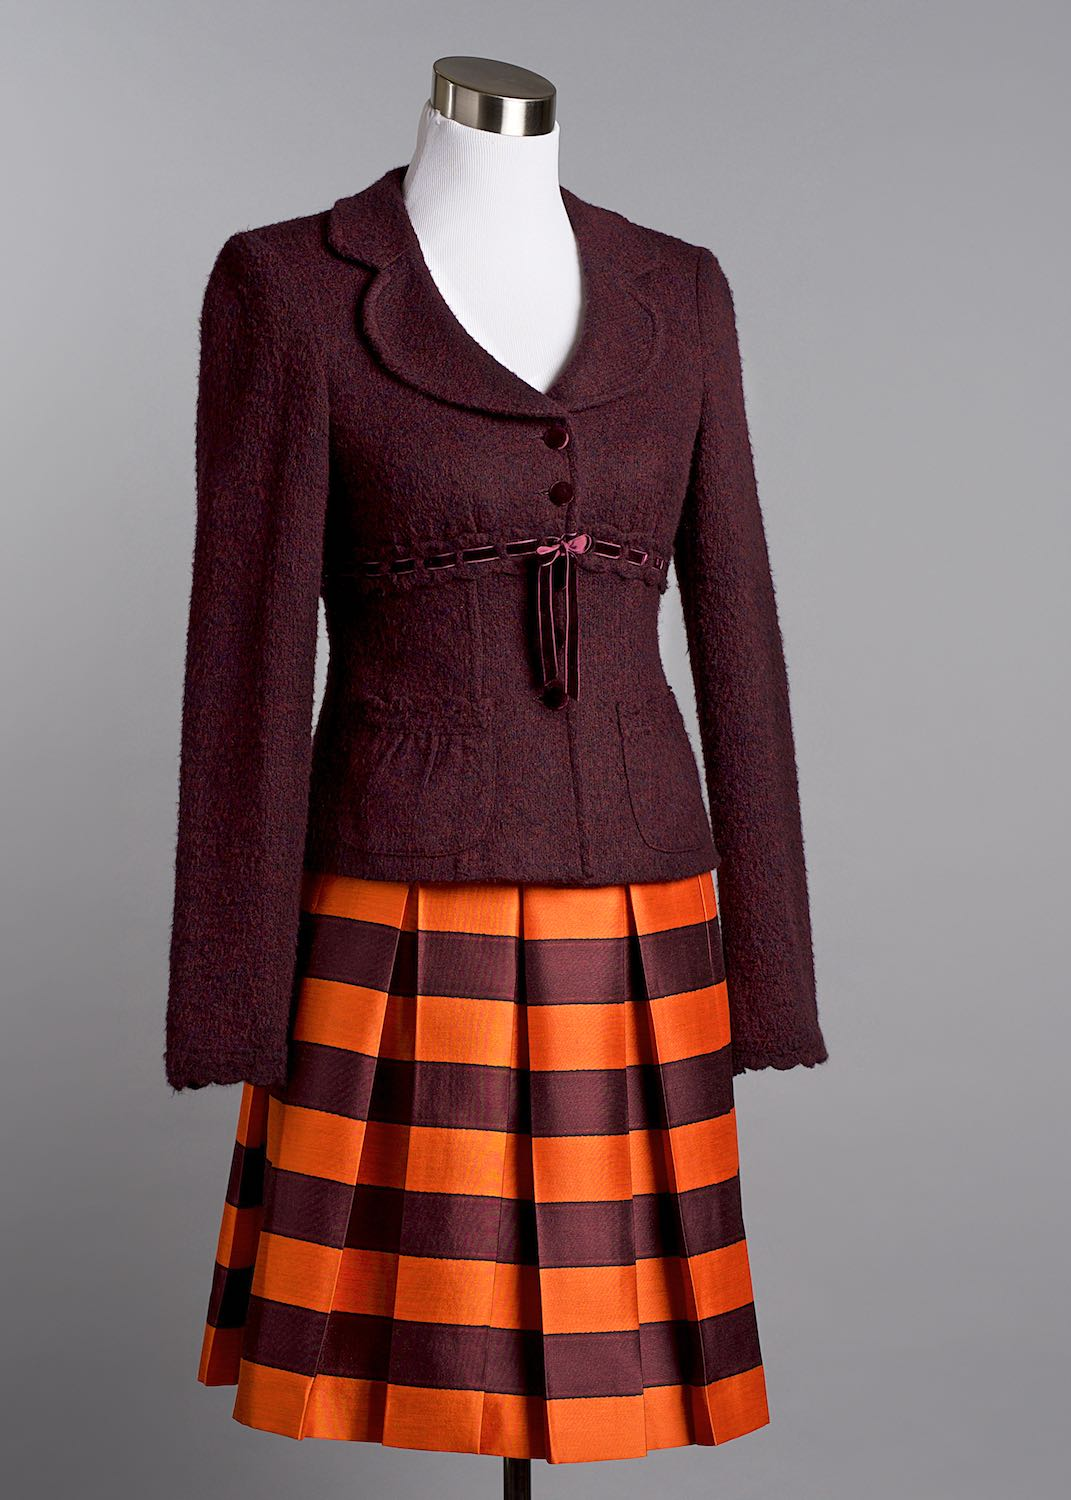 Prada Skirt with Nanette Lepore jacket on mannequin by Bret Doss Commercial Product Photography Seattle